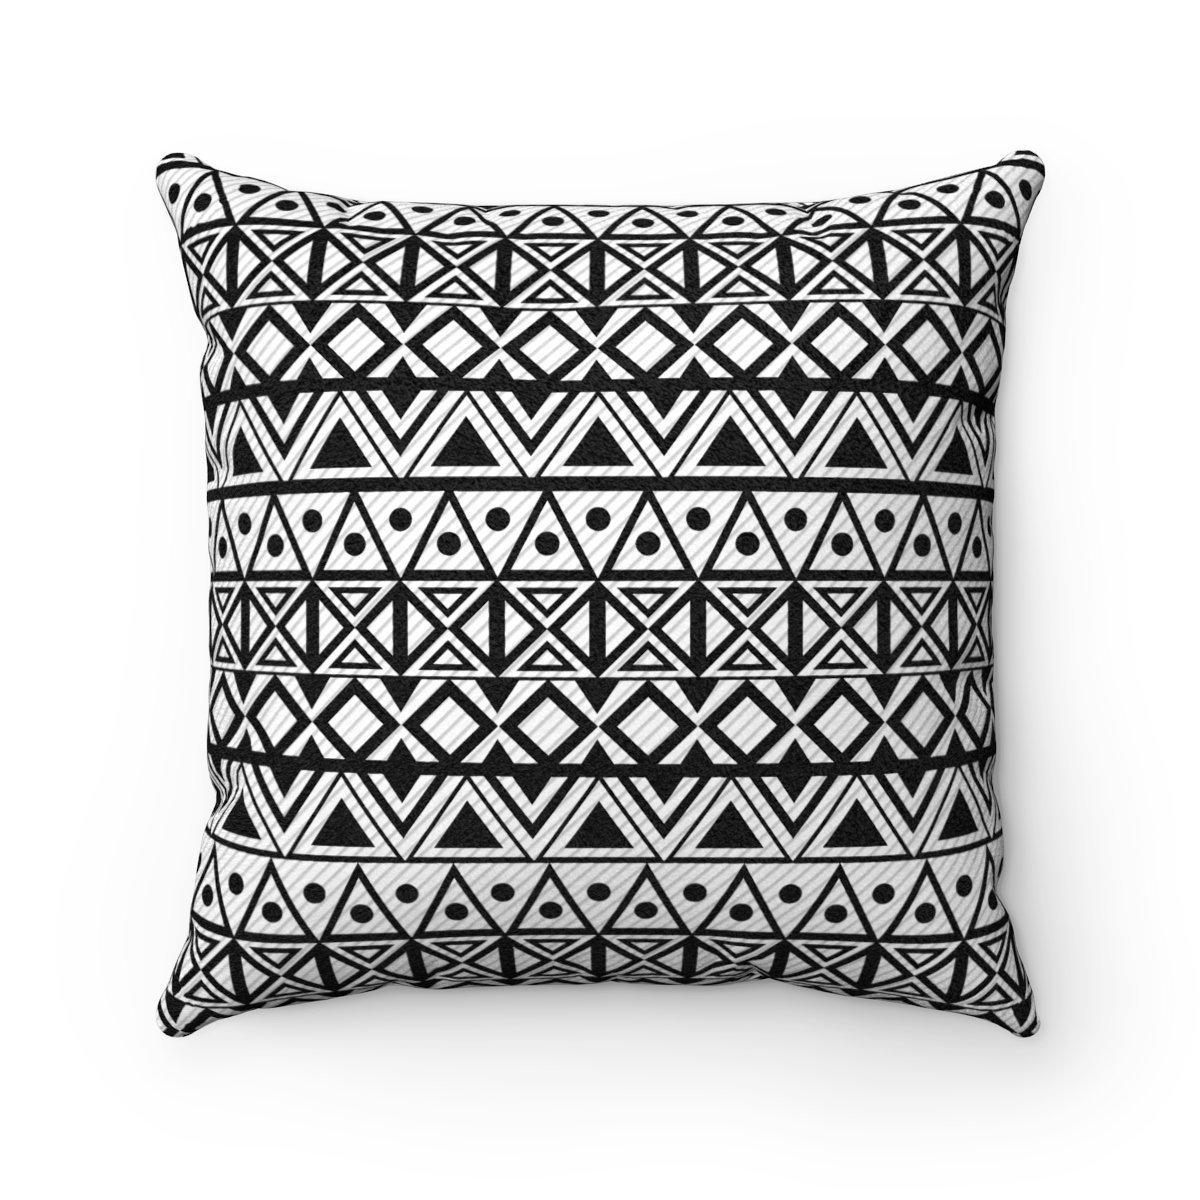 Black and white ethnic animal-friendly microfiber decorative pillow w/insert-Home Decor - Decorative Accents - Pillows & Throws - Decorative Pillows-Maison d'Elite-14x14-Très Elite